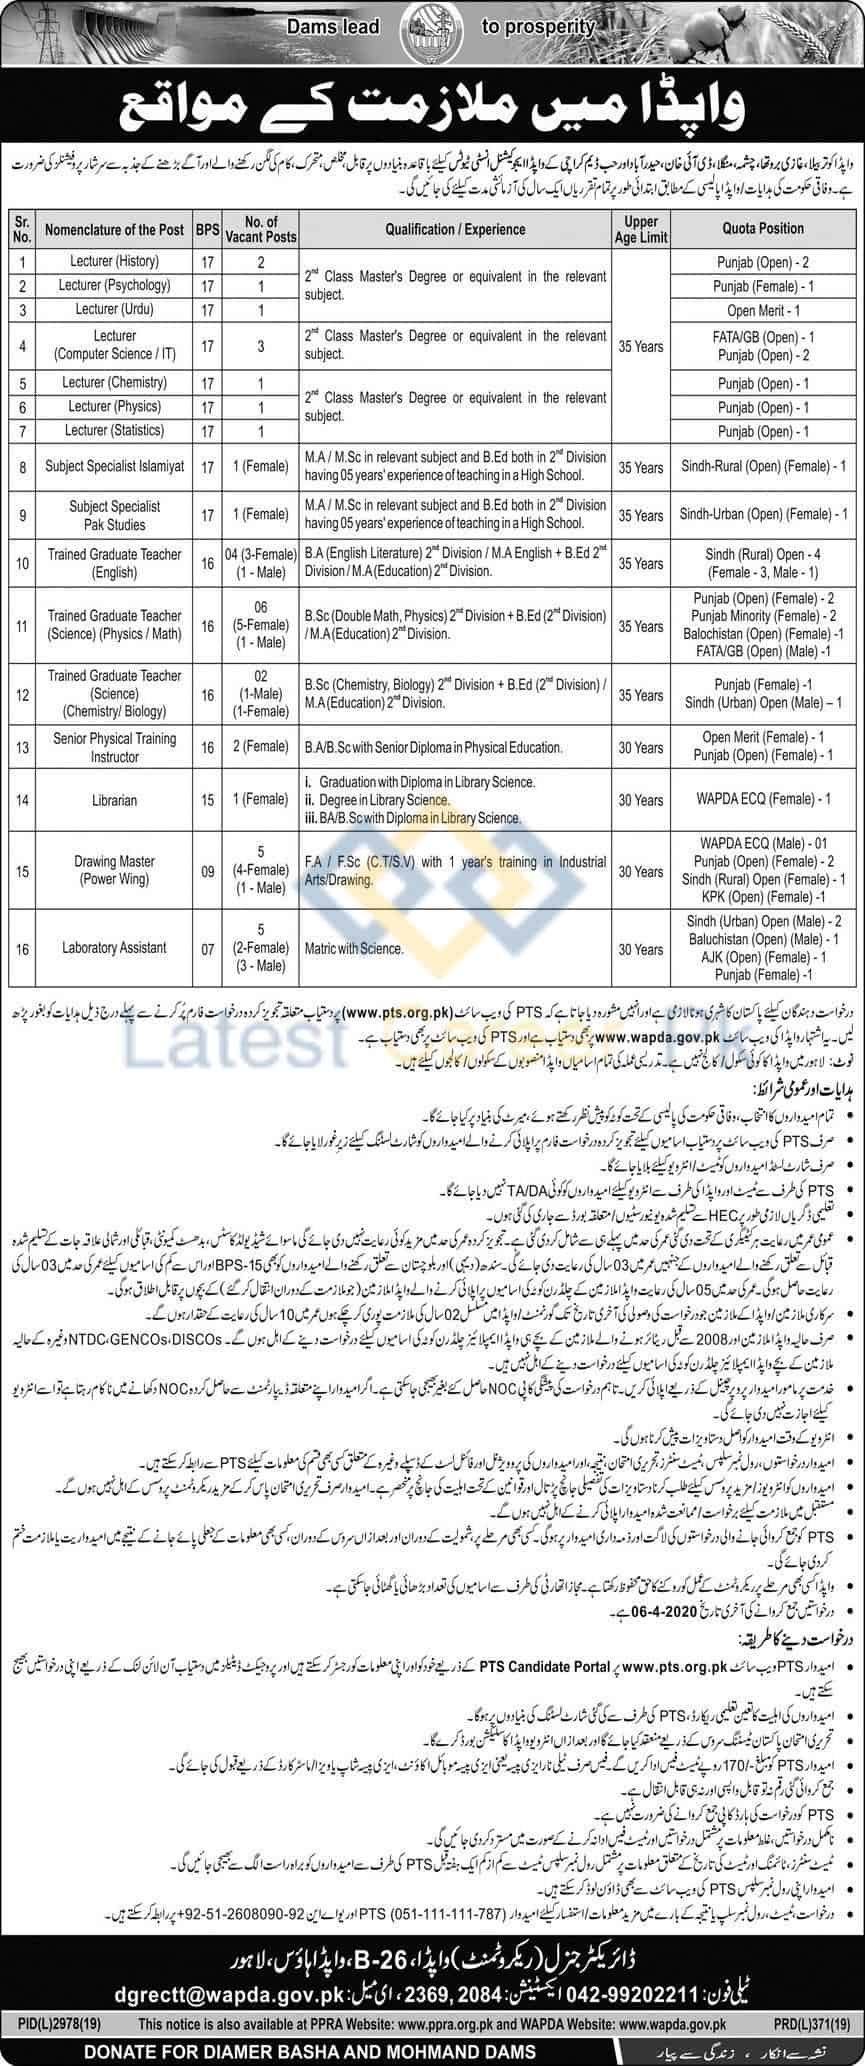 WAPDA-Educational-Institutes-Pakistan-Jobs-22-Mar-2020